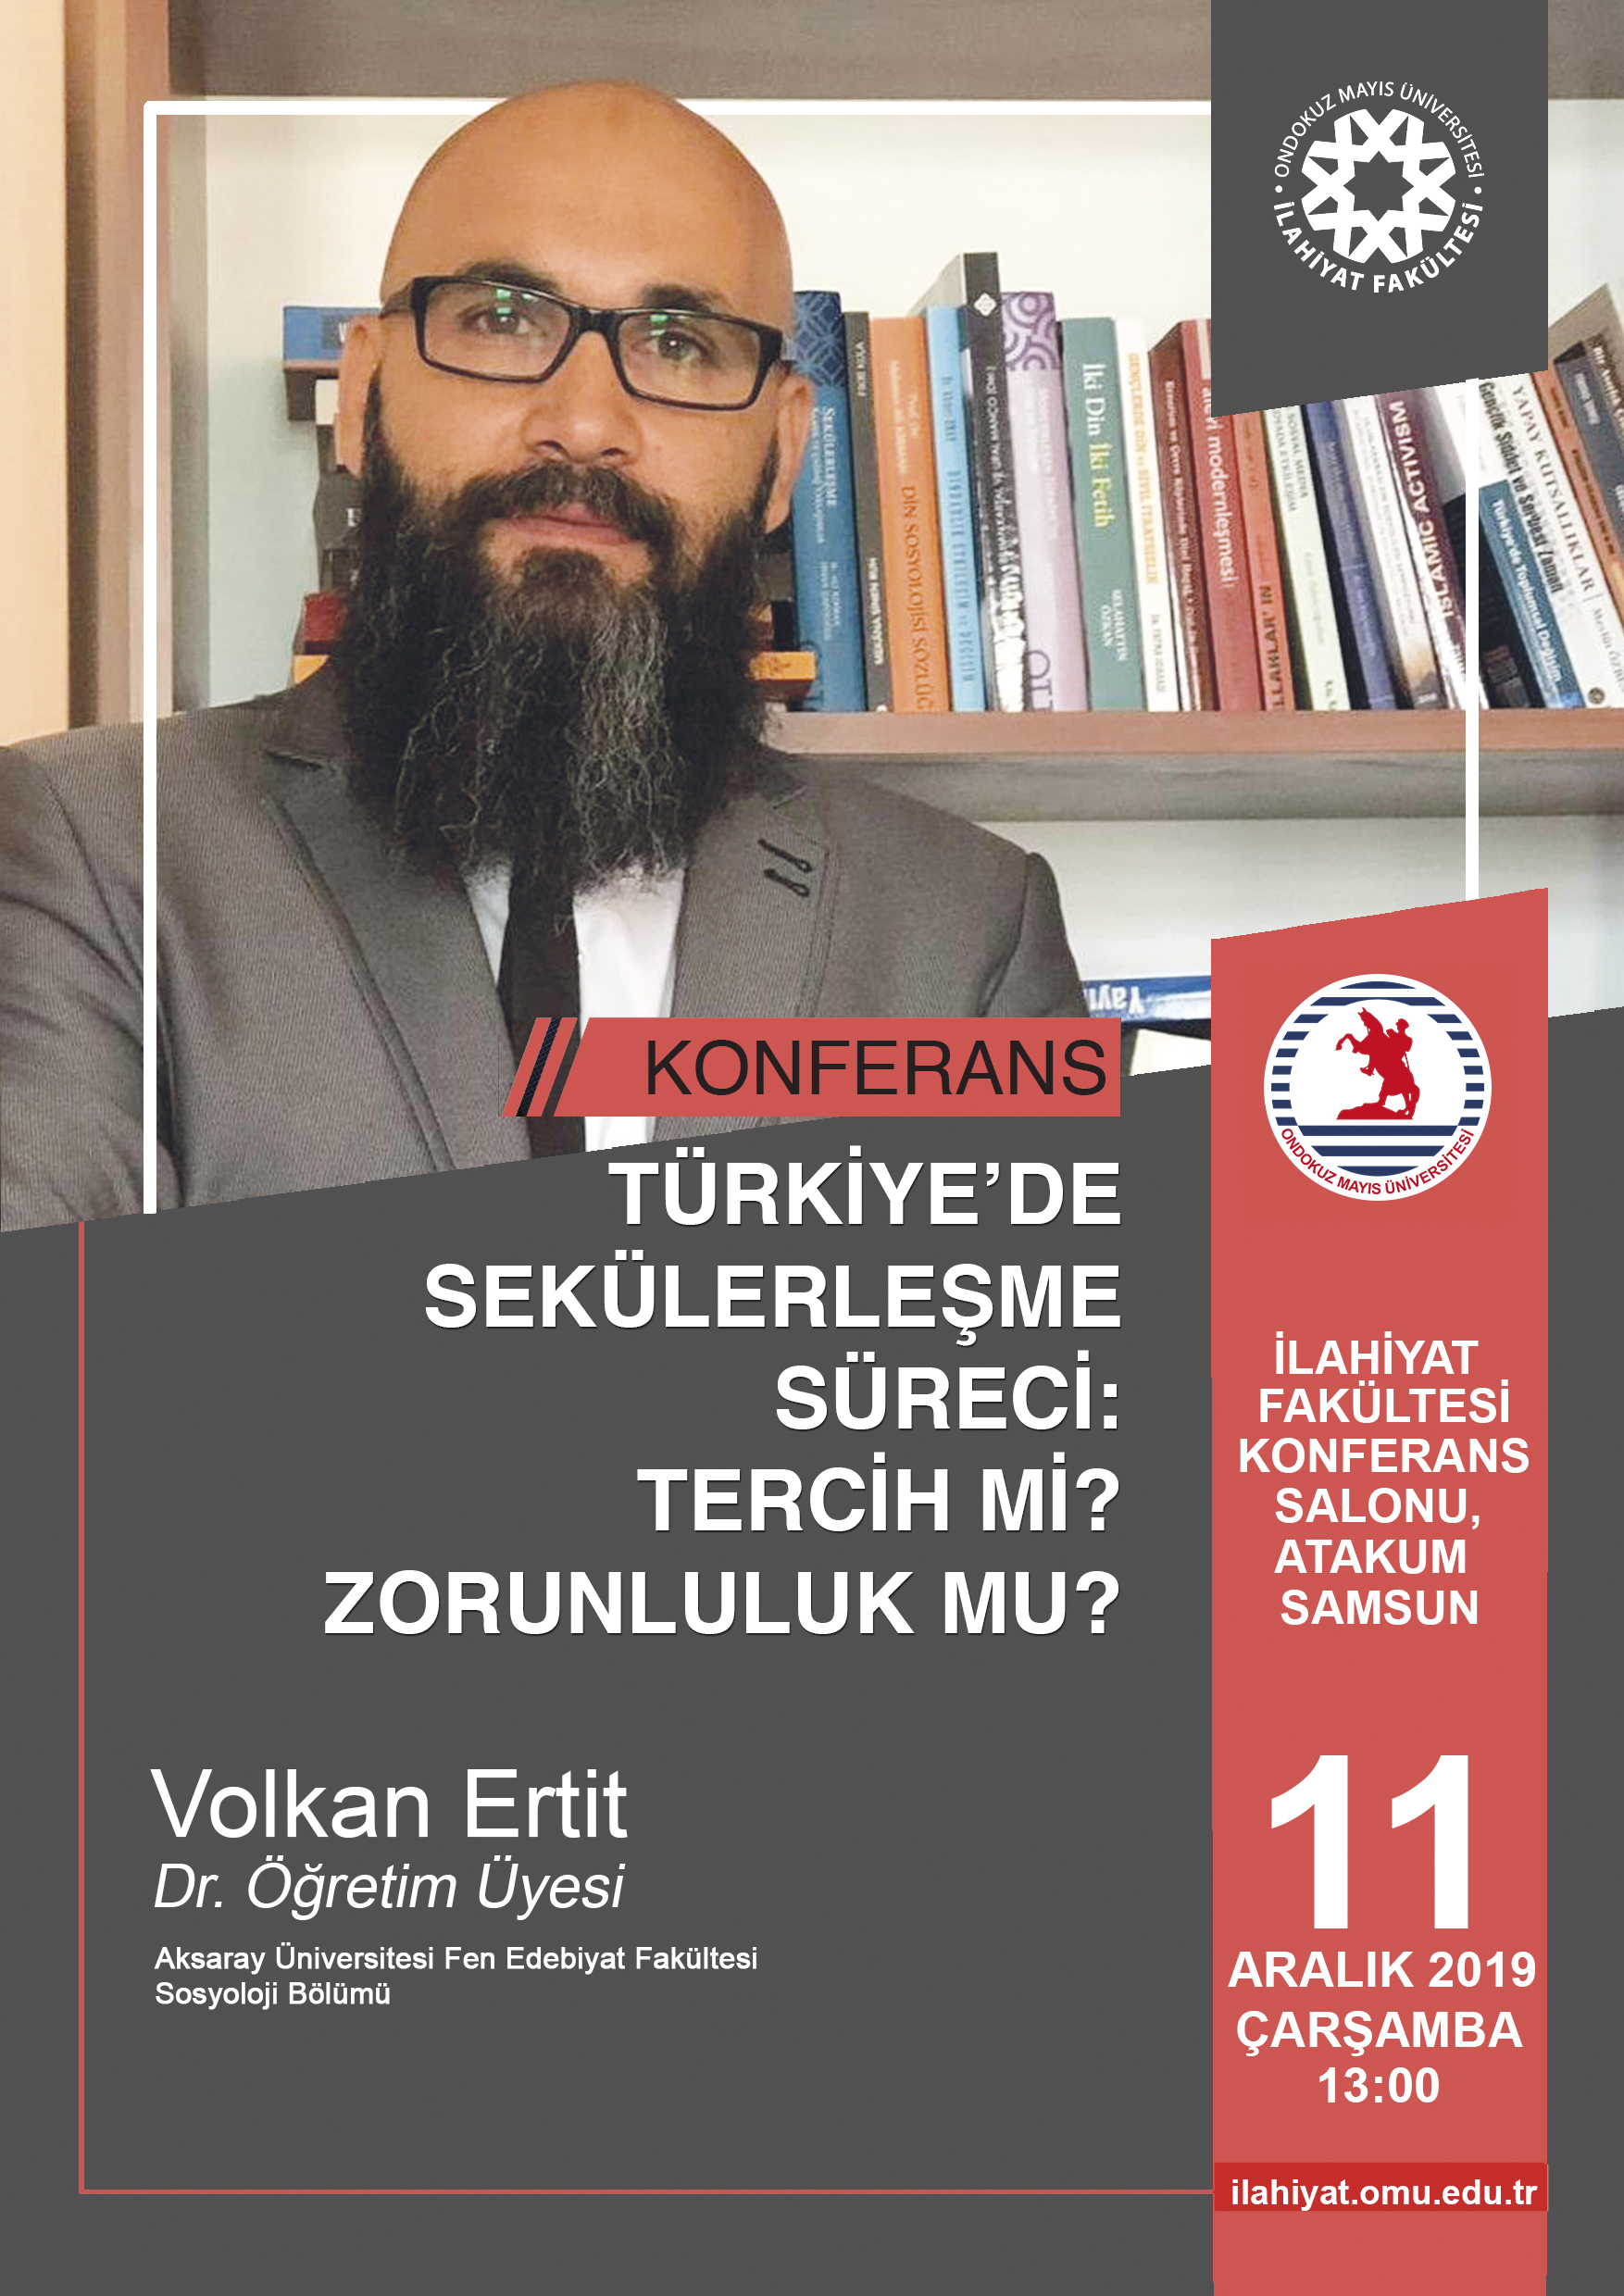 http://www.omu.edu.tr/sites/default/files/volkan_ertit.jpg